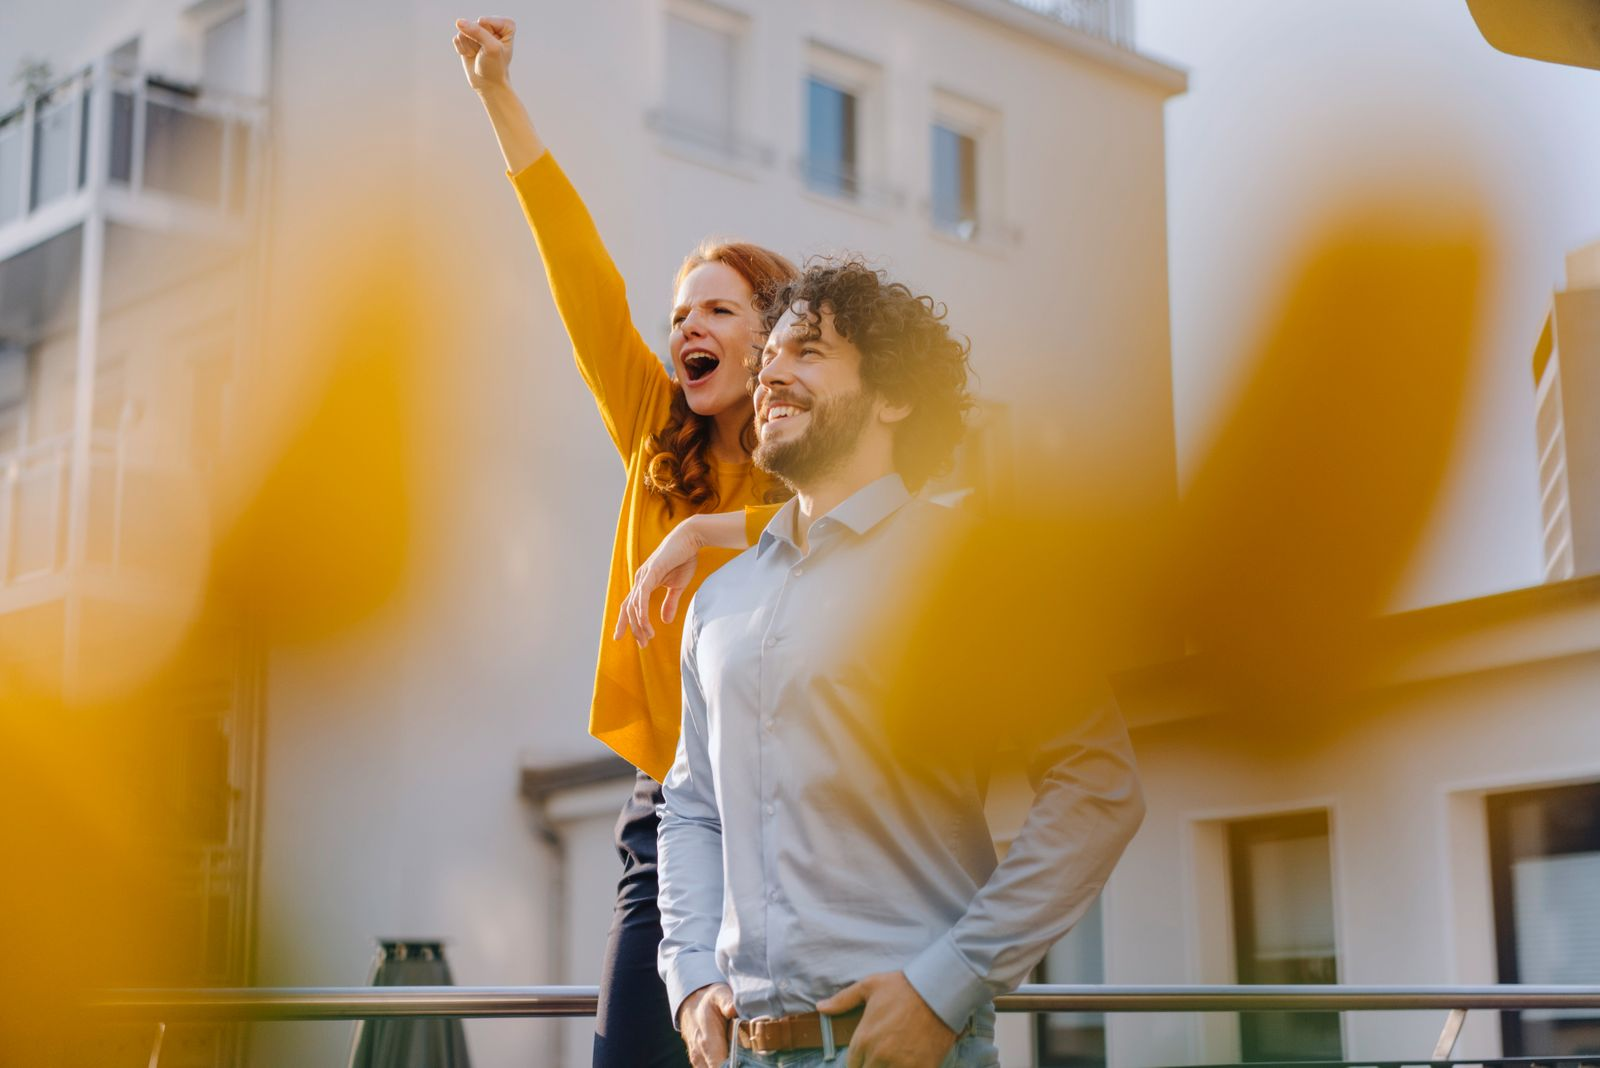 Woman with colleague on roof terrace clenching fist